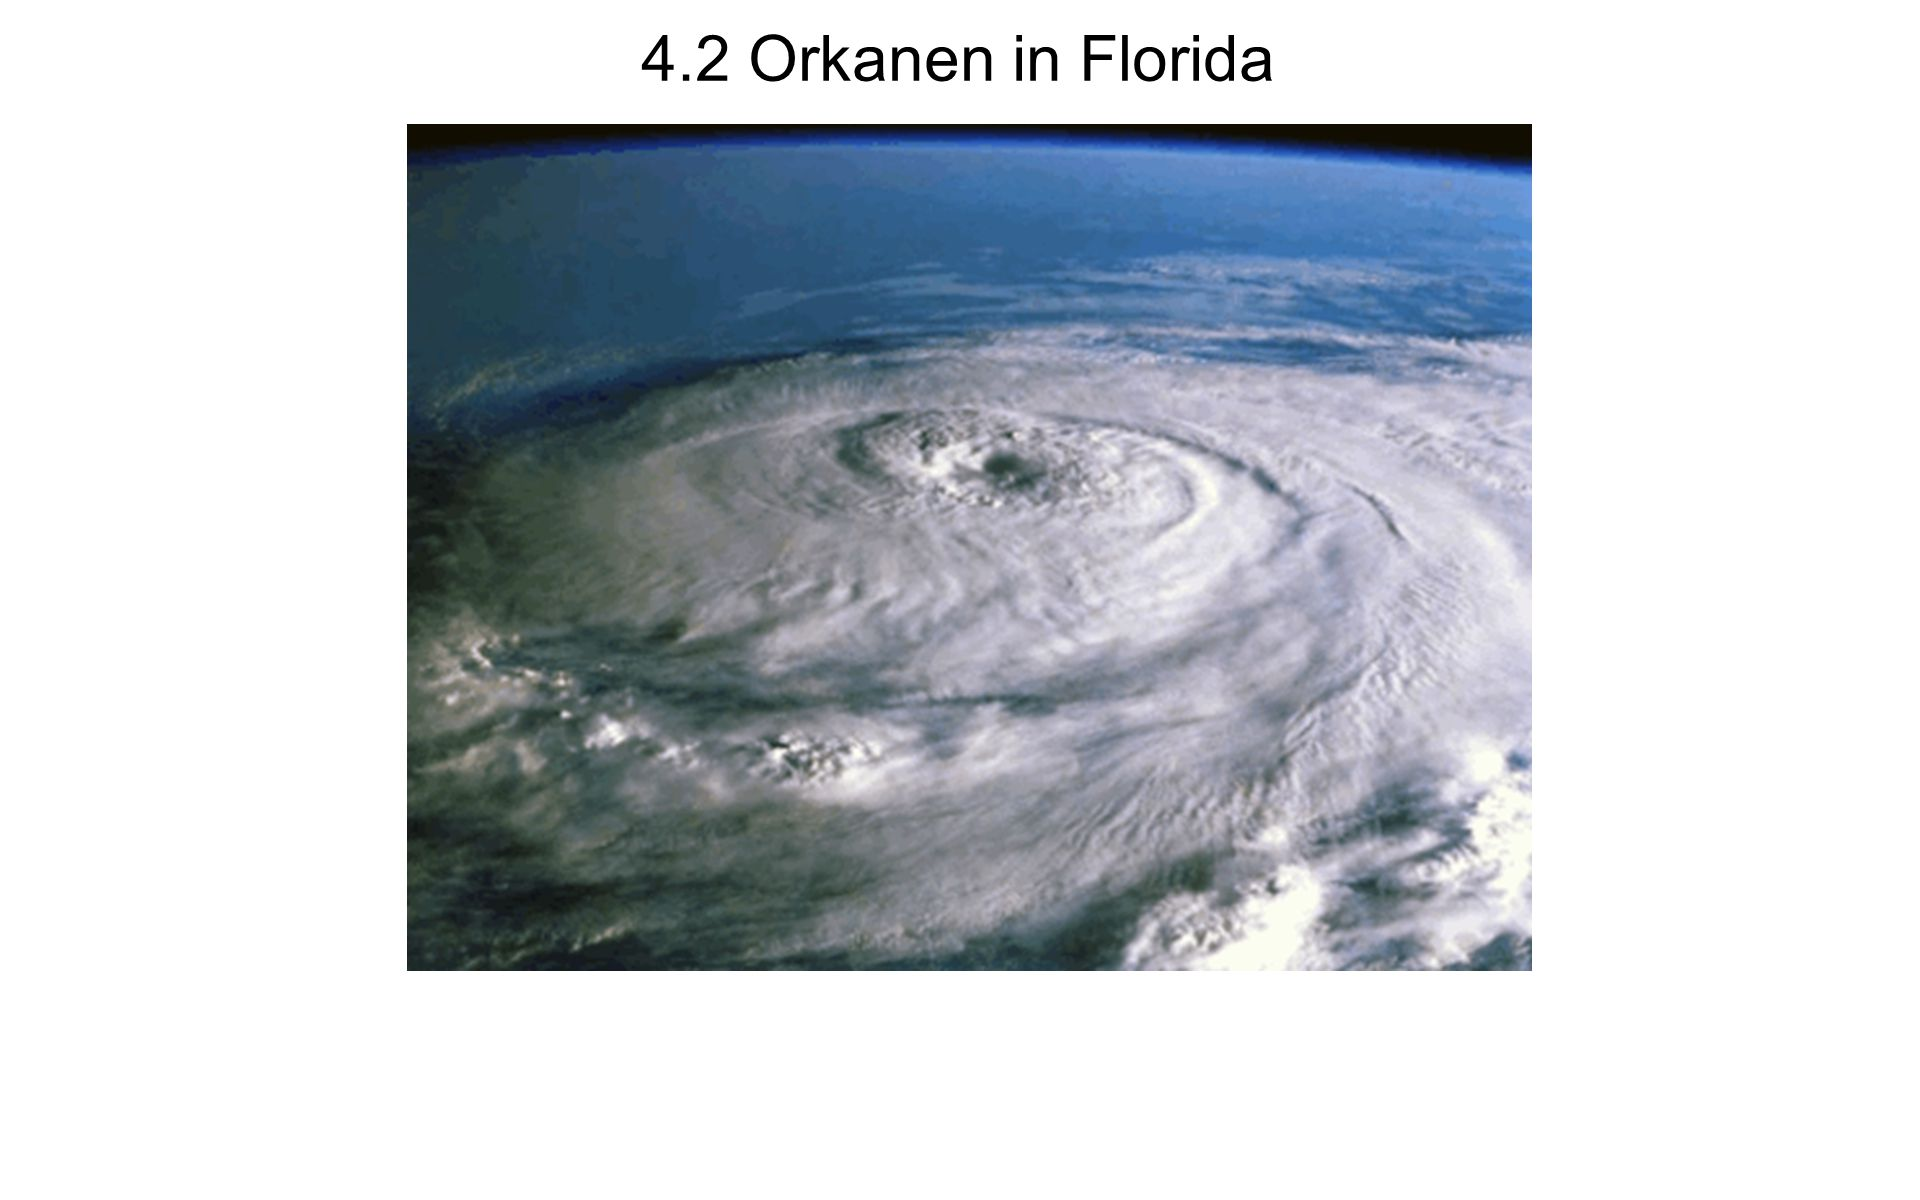 4.2 Orkanen in Florida